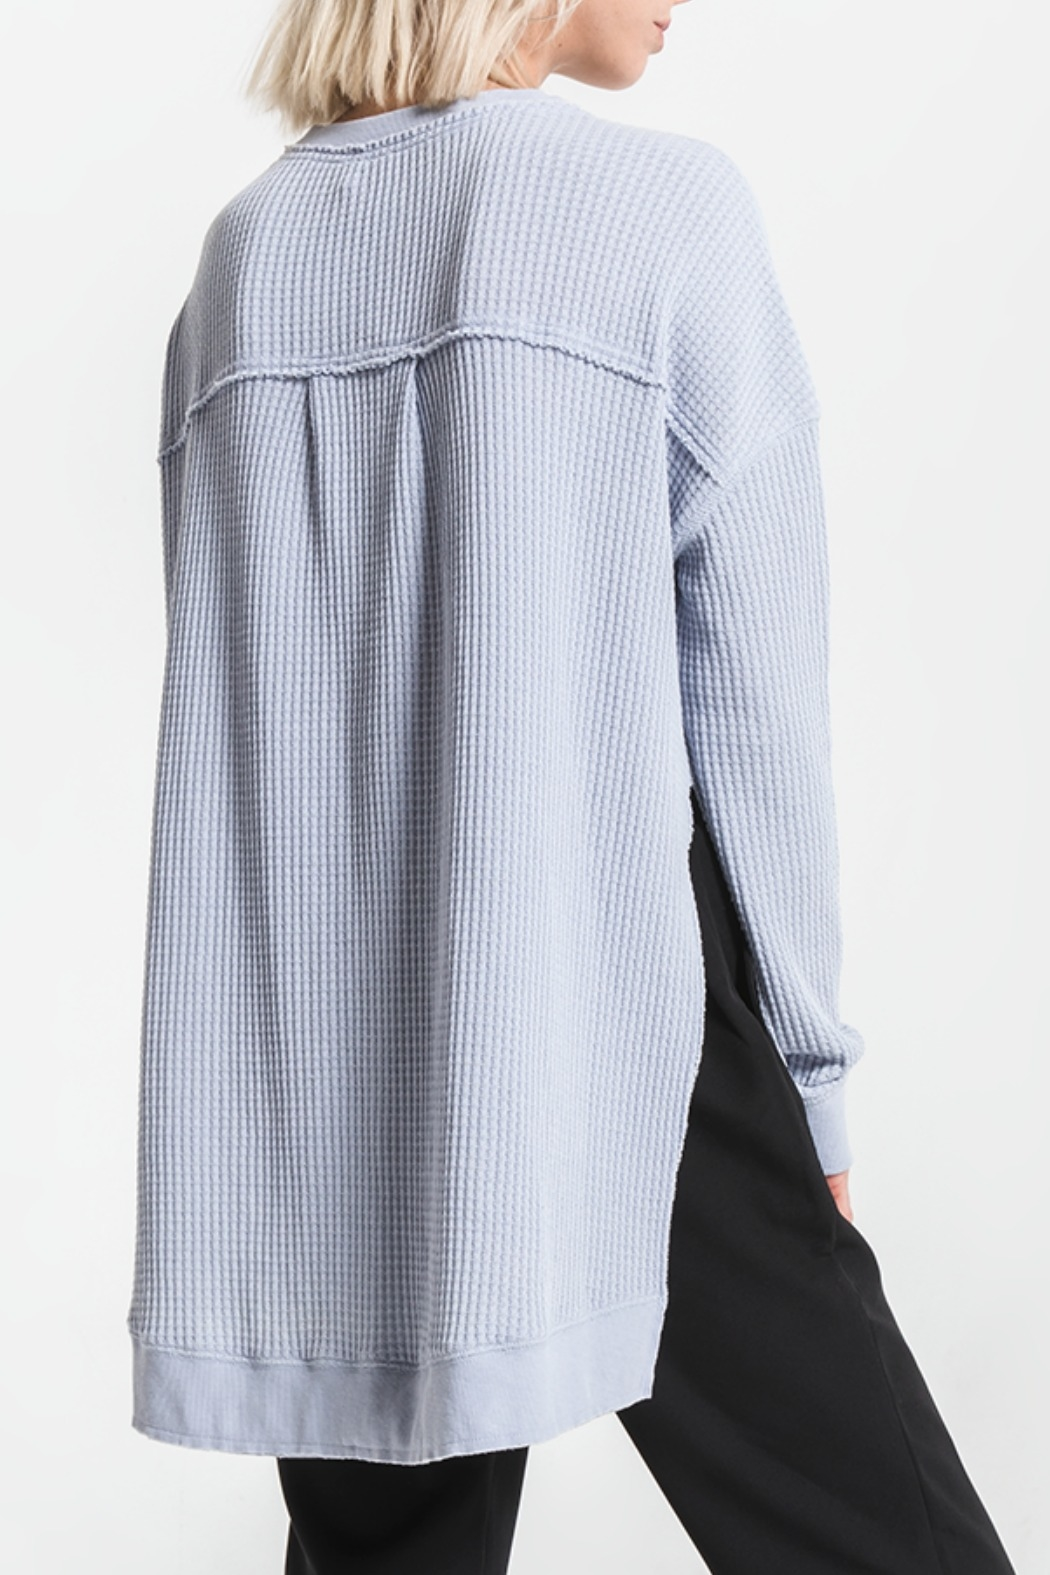 Others Follow  Periwinkle Long Sleeve Thermal Top - Front Full Image